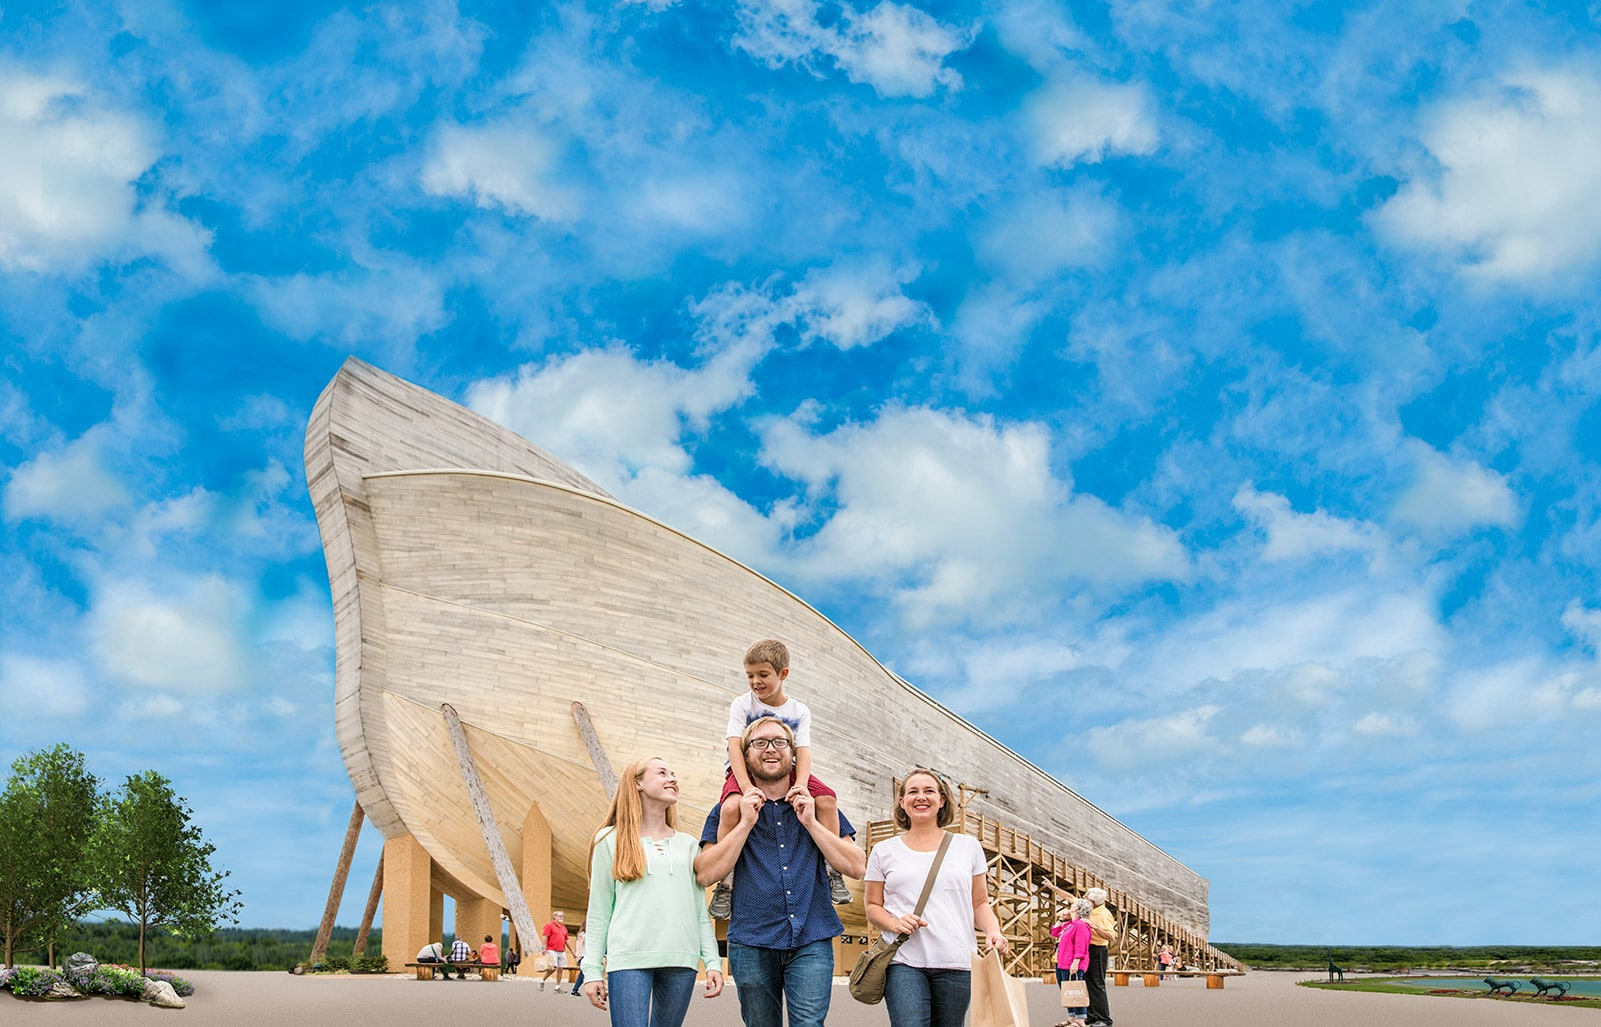 The Ark museum outside